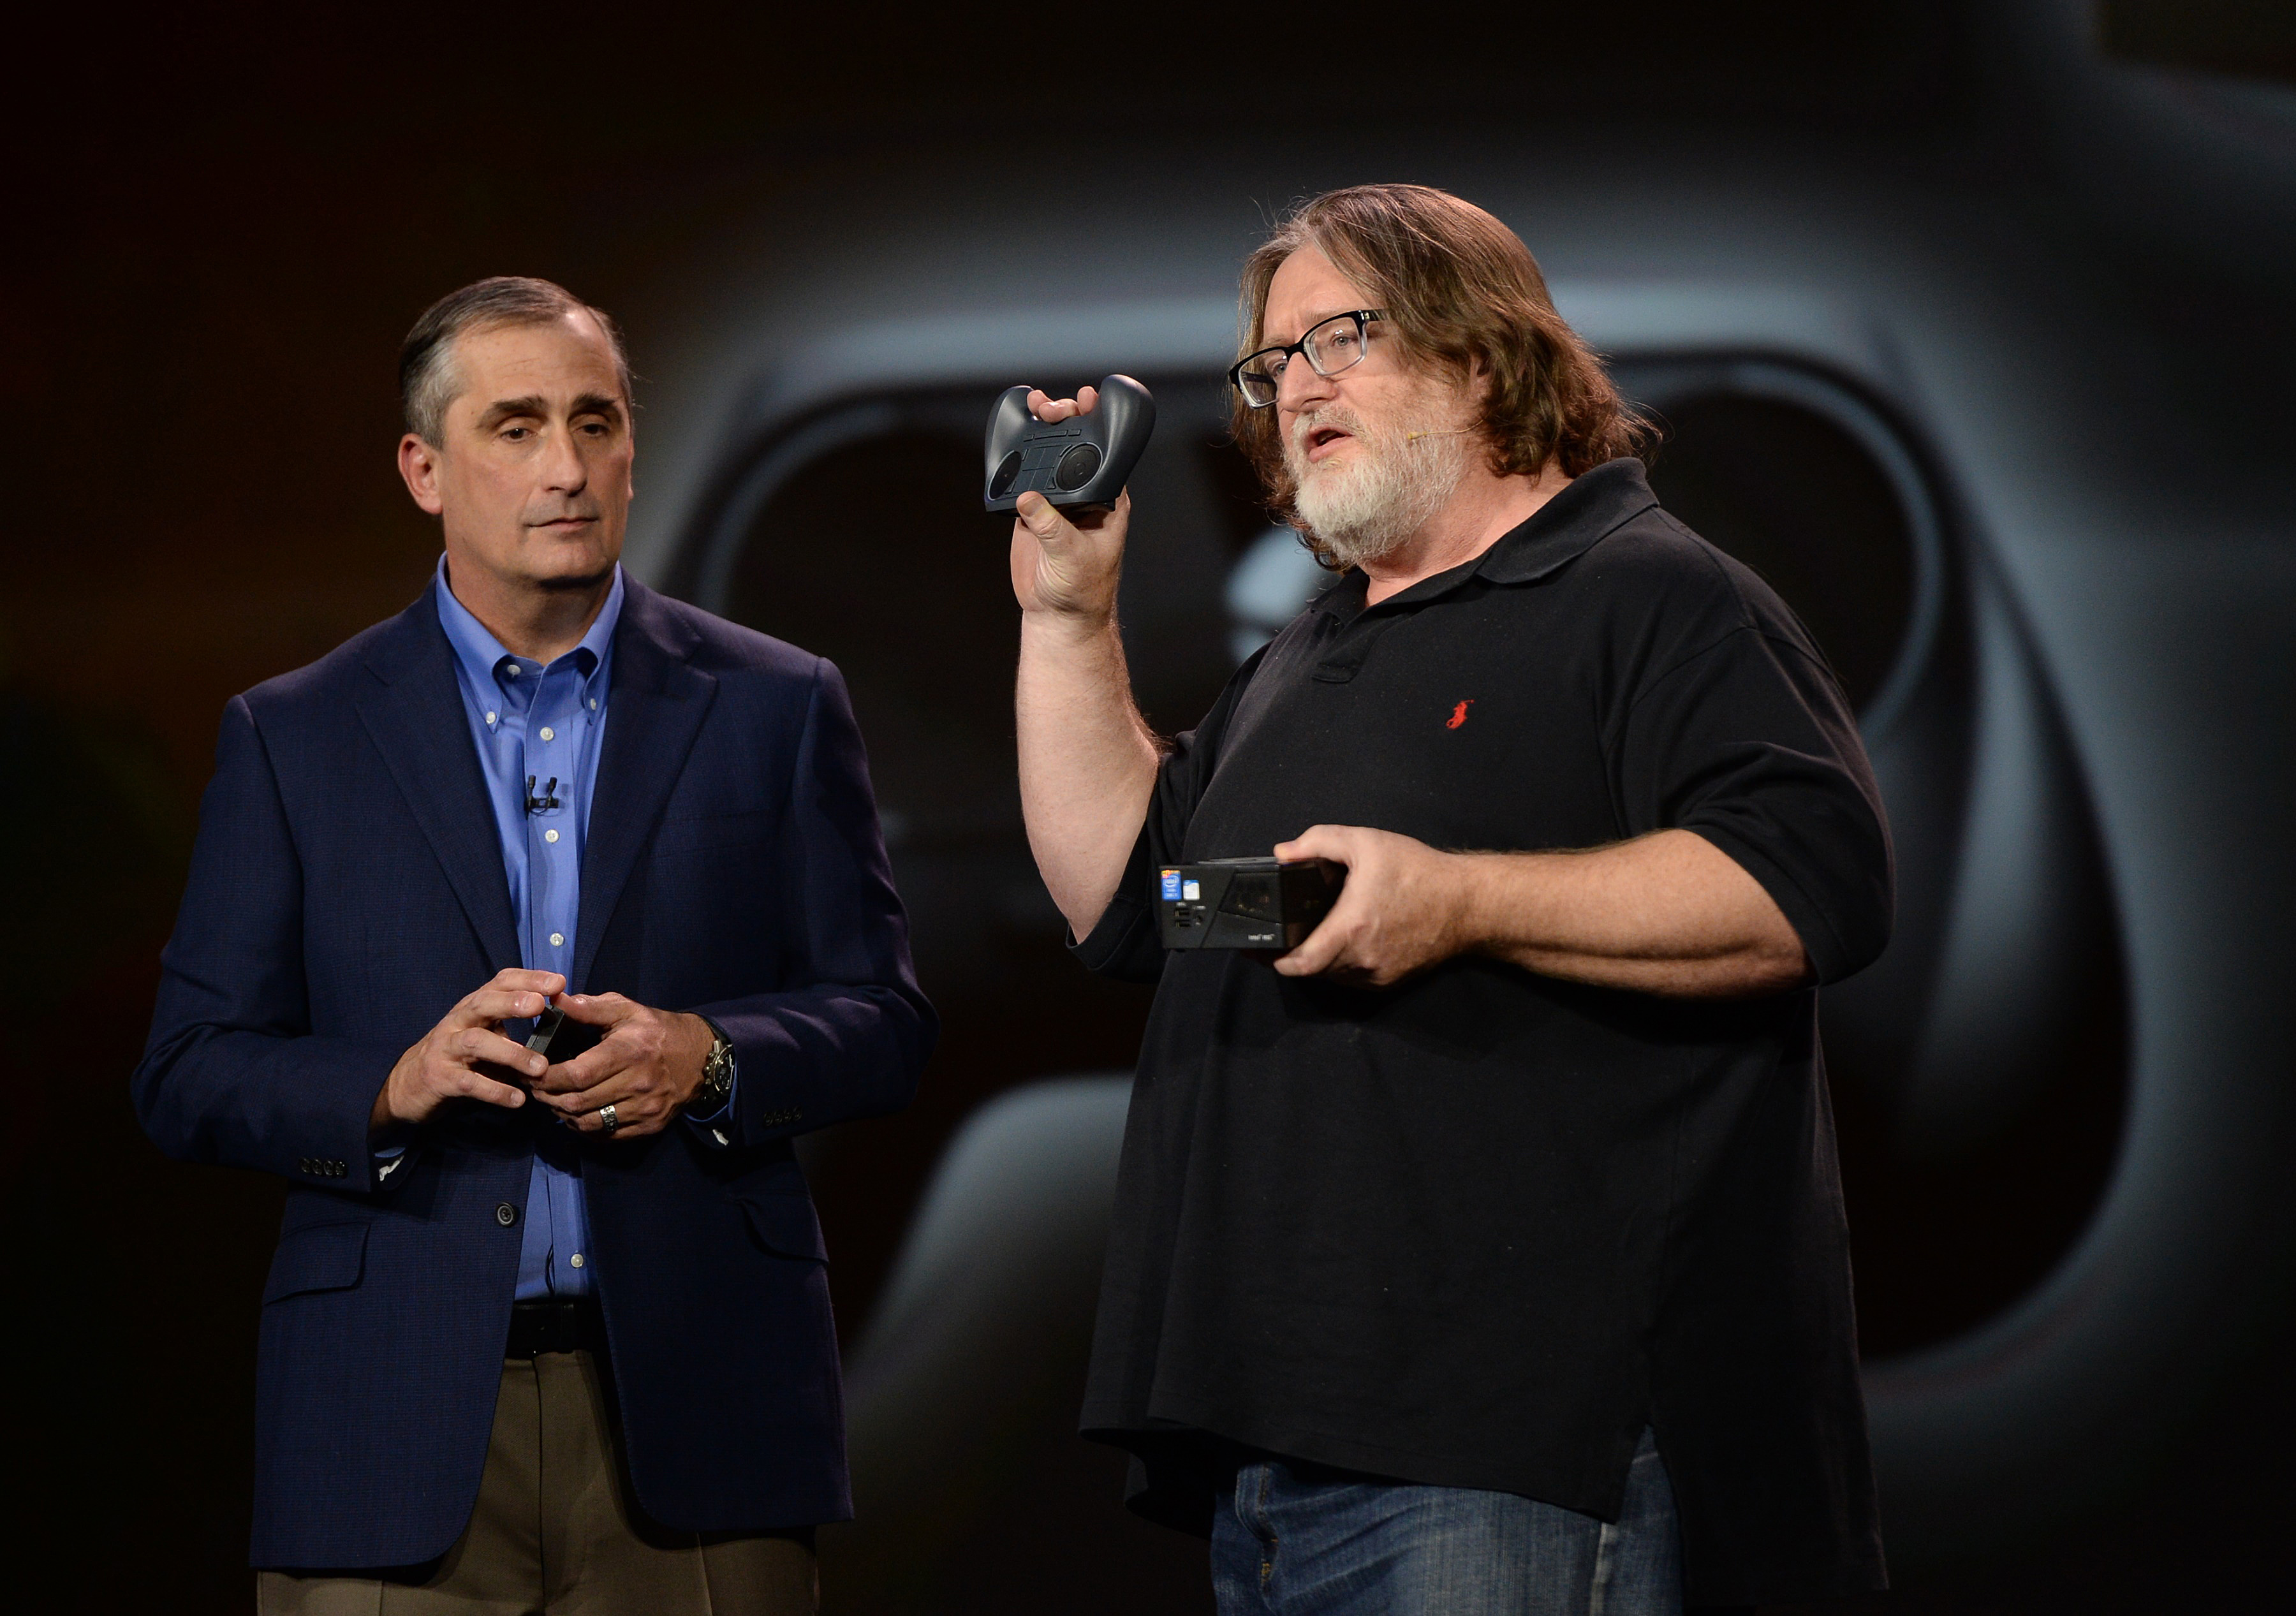 Intel Corp. CEO Brian Krzanich (L)  and Gabe Newell, co-founder of game-maker Valve, discuss Intel's role in Valve's gaming development, during Krzanich's keynote address at the 2014 International CES.